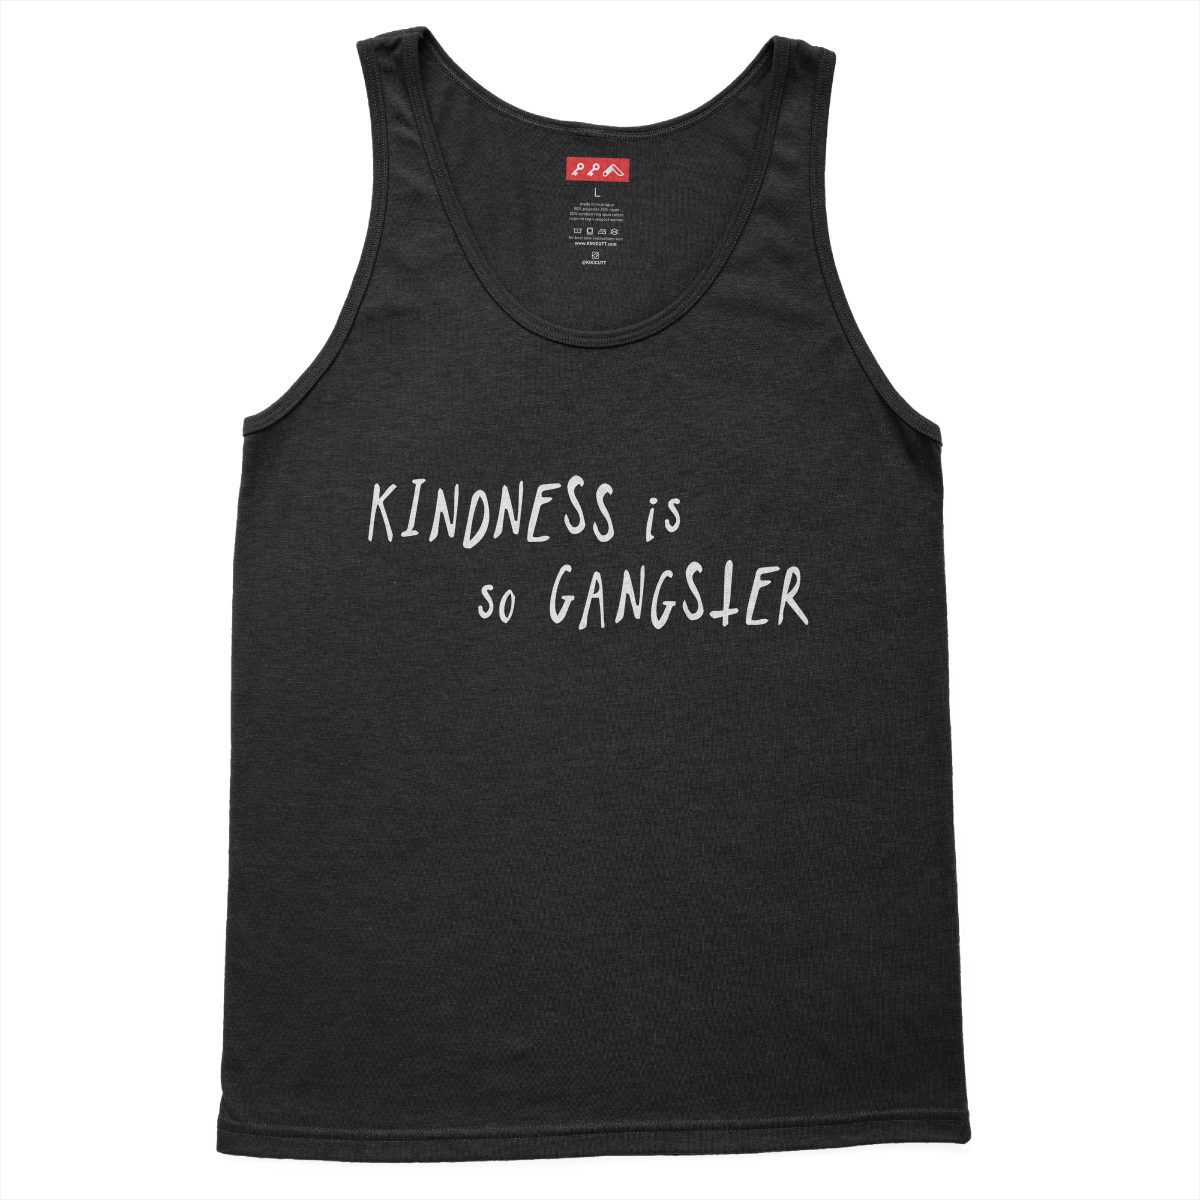 KINDNESS IS SO GANGSTER graphic on a charcoal black triblend tank top at kikicutt.com